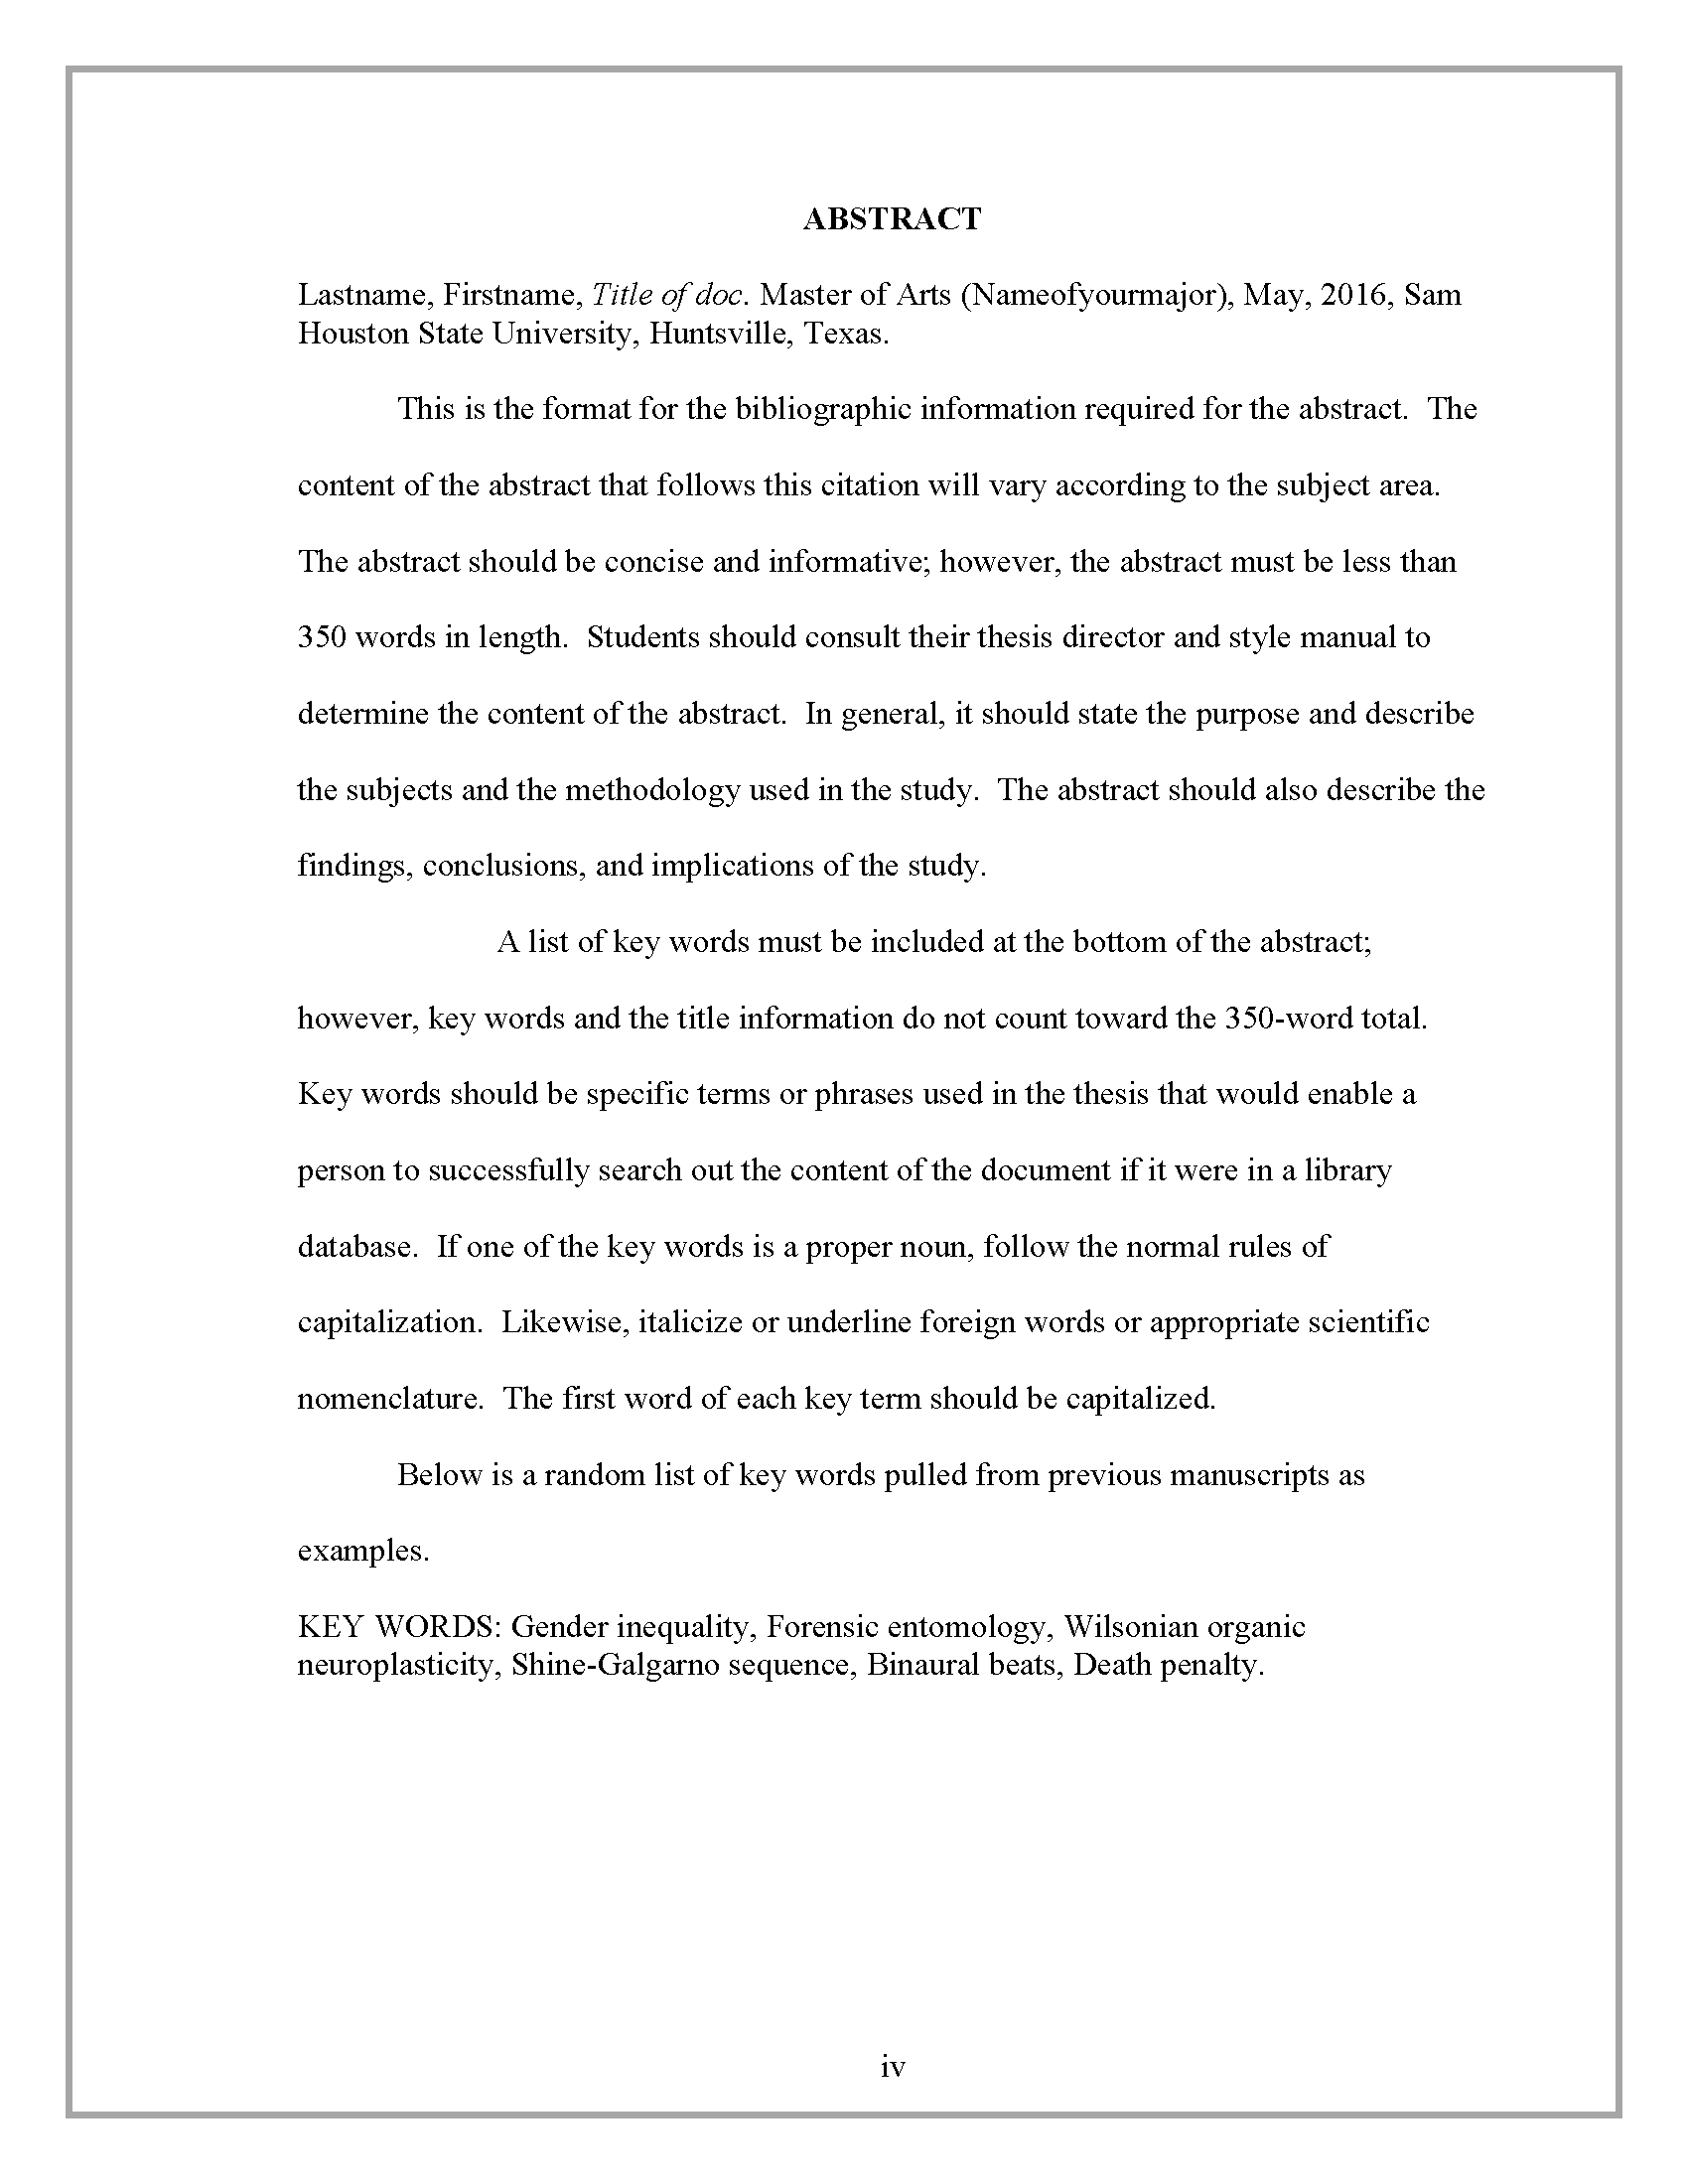 007 Art Of Writing Research Paper And Thesis Abstract Border Top A Full